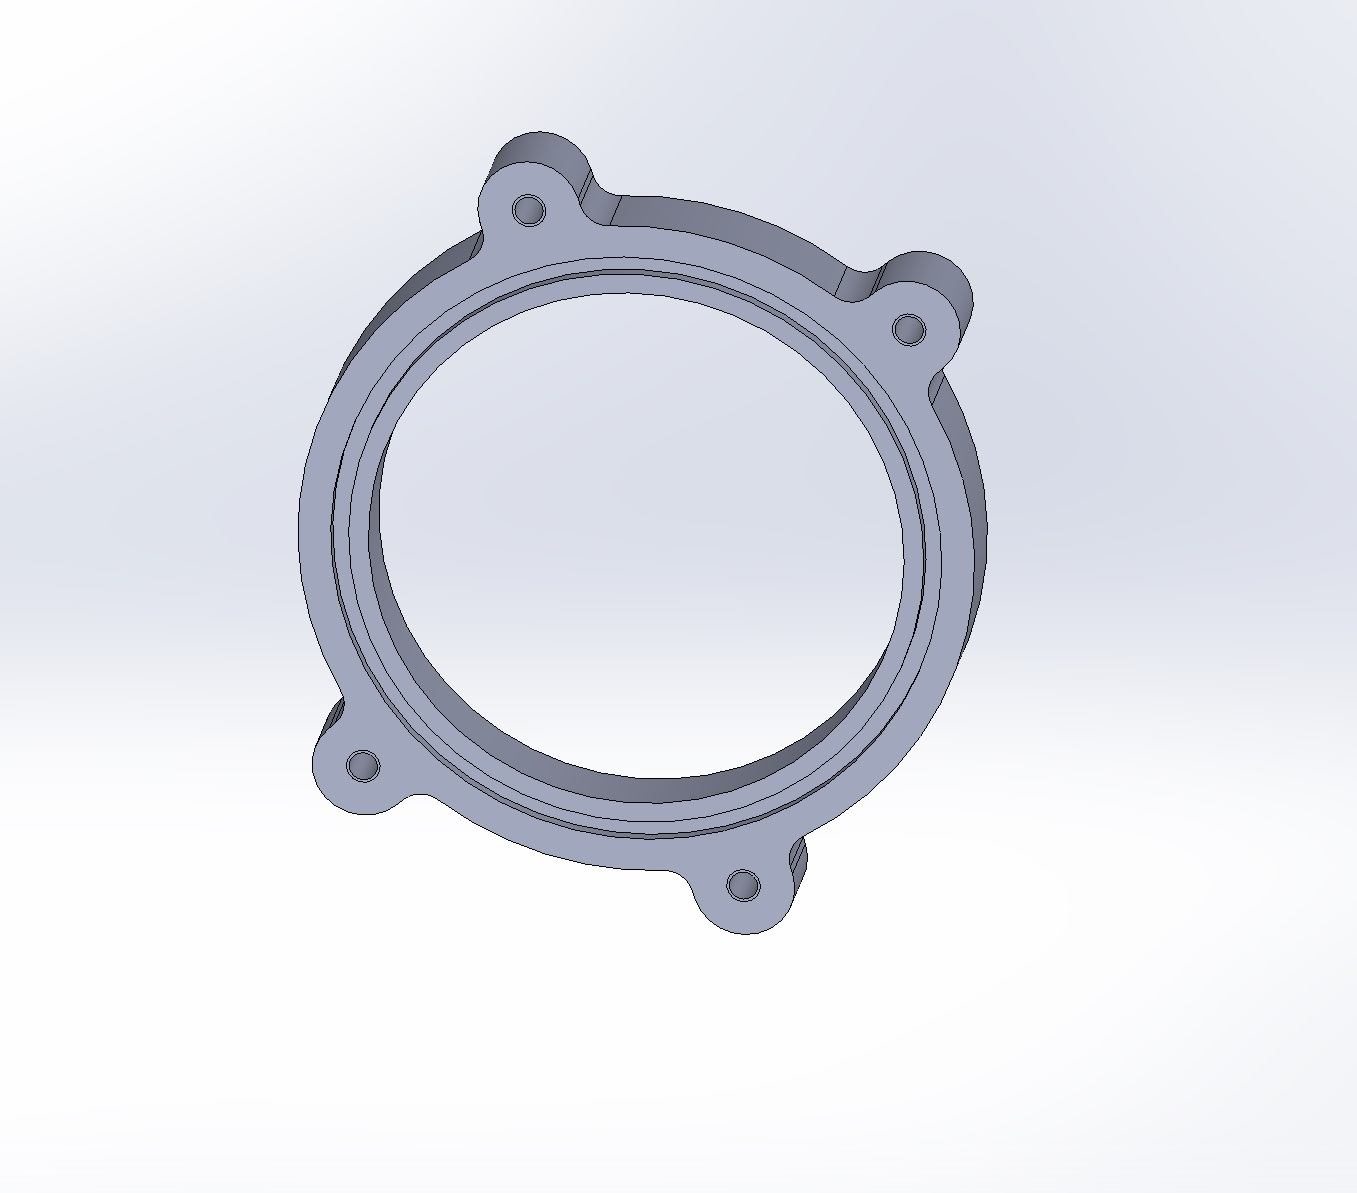 LT5 flange; o-ring seals against throttle body